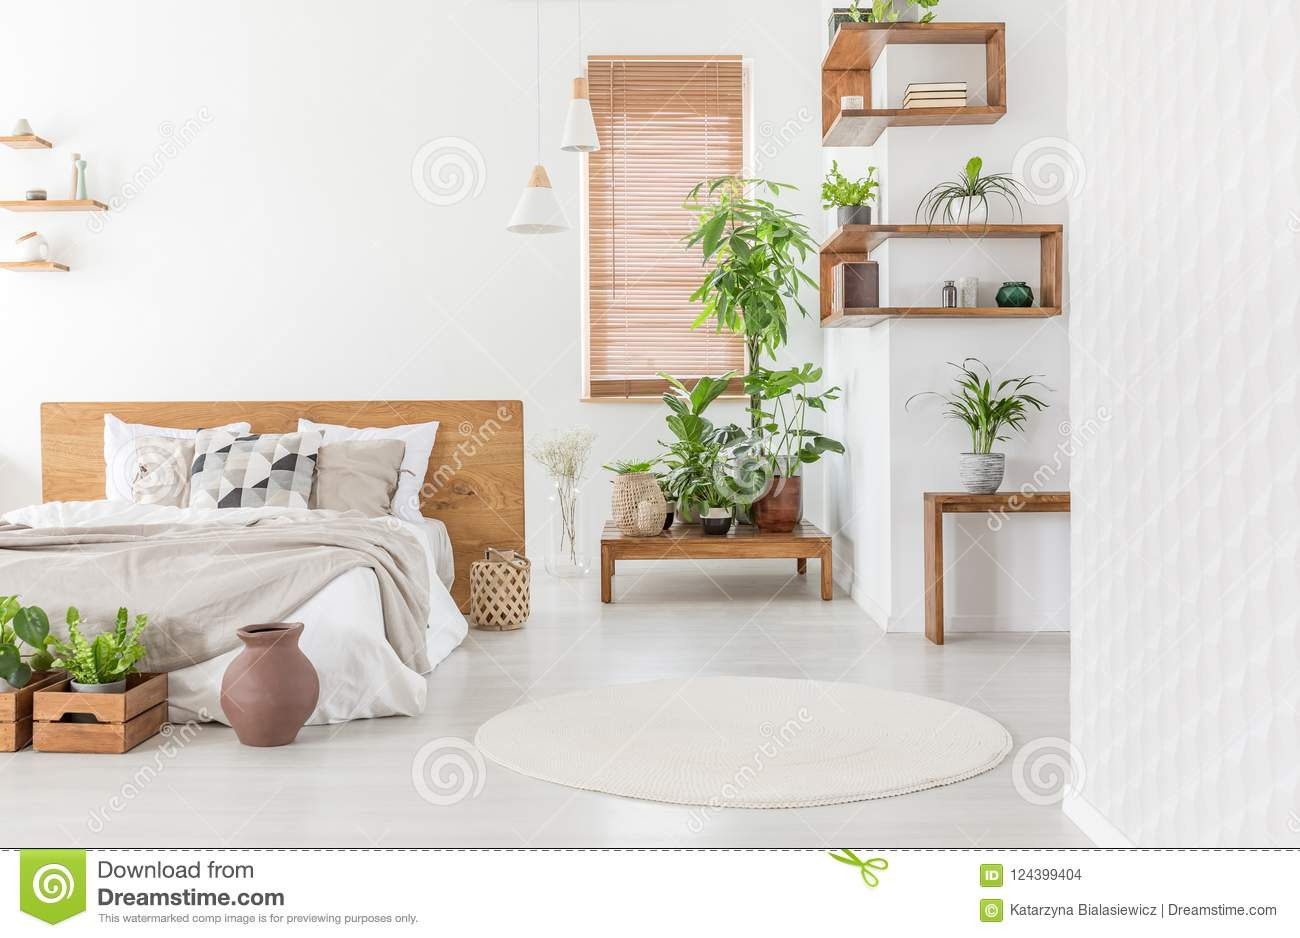 master bedroom hardwood floors of real photo of a cozy bedroom interior with plants double bed r with real photo of a cozy bedroom interior with plants double bed round rug and wooden accents concept